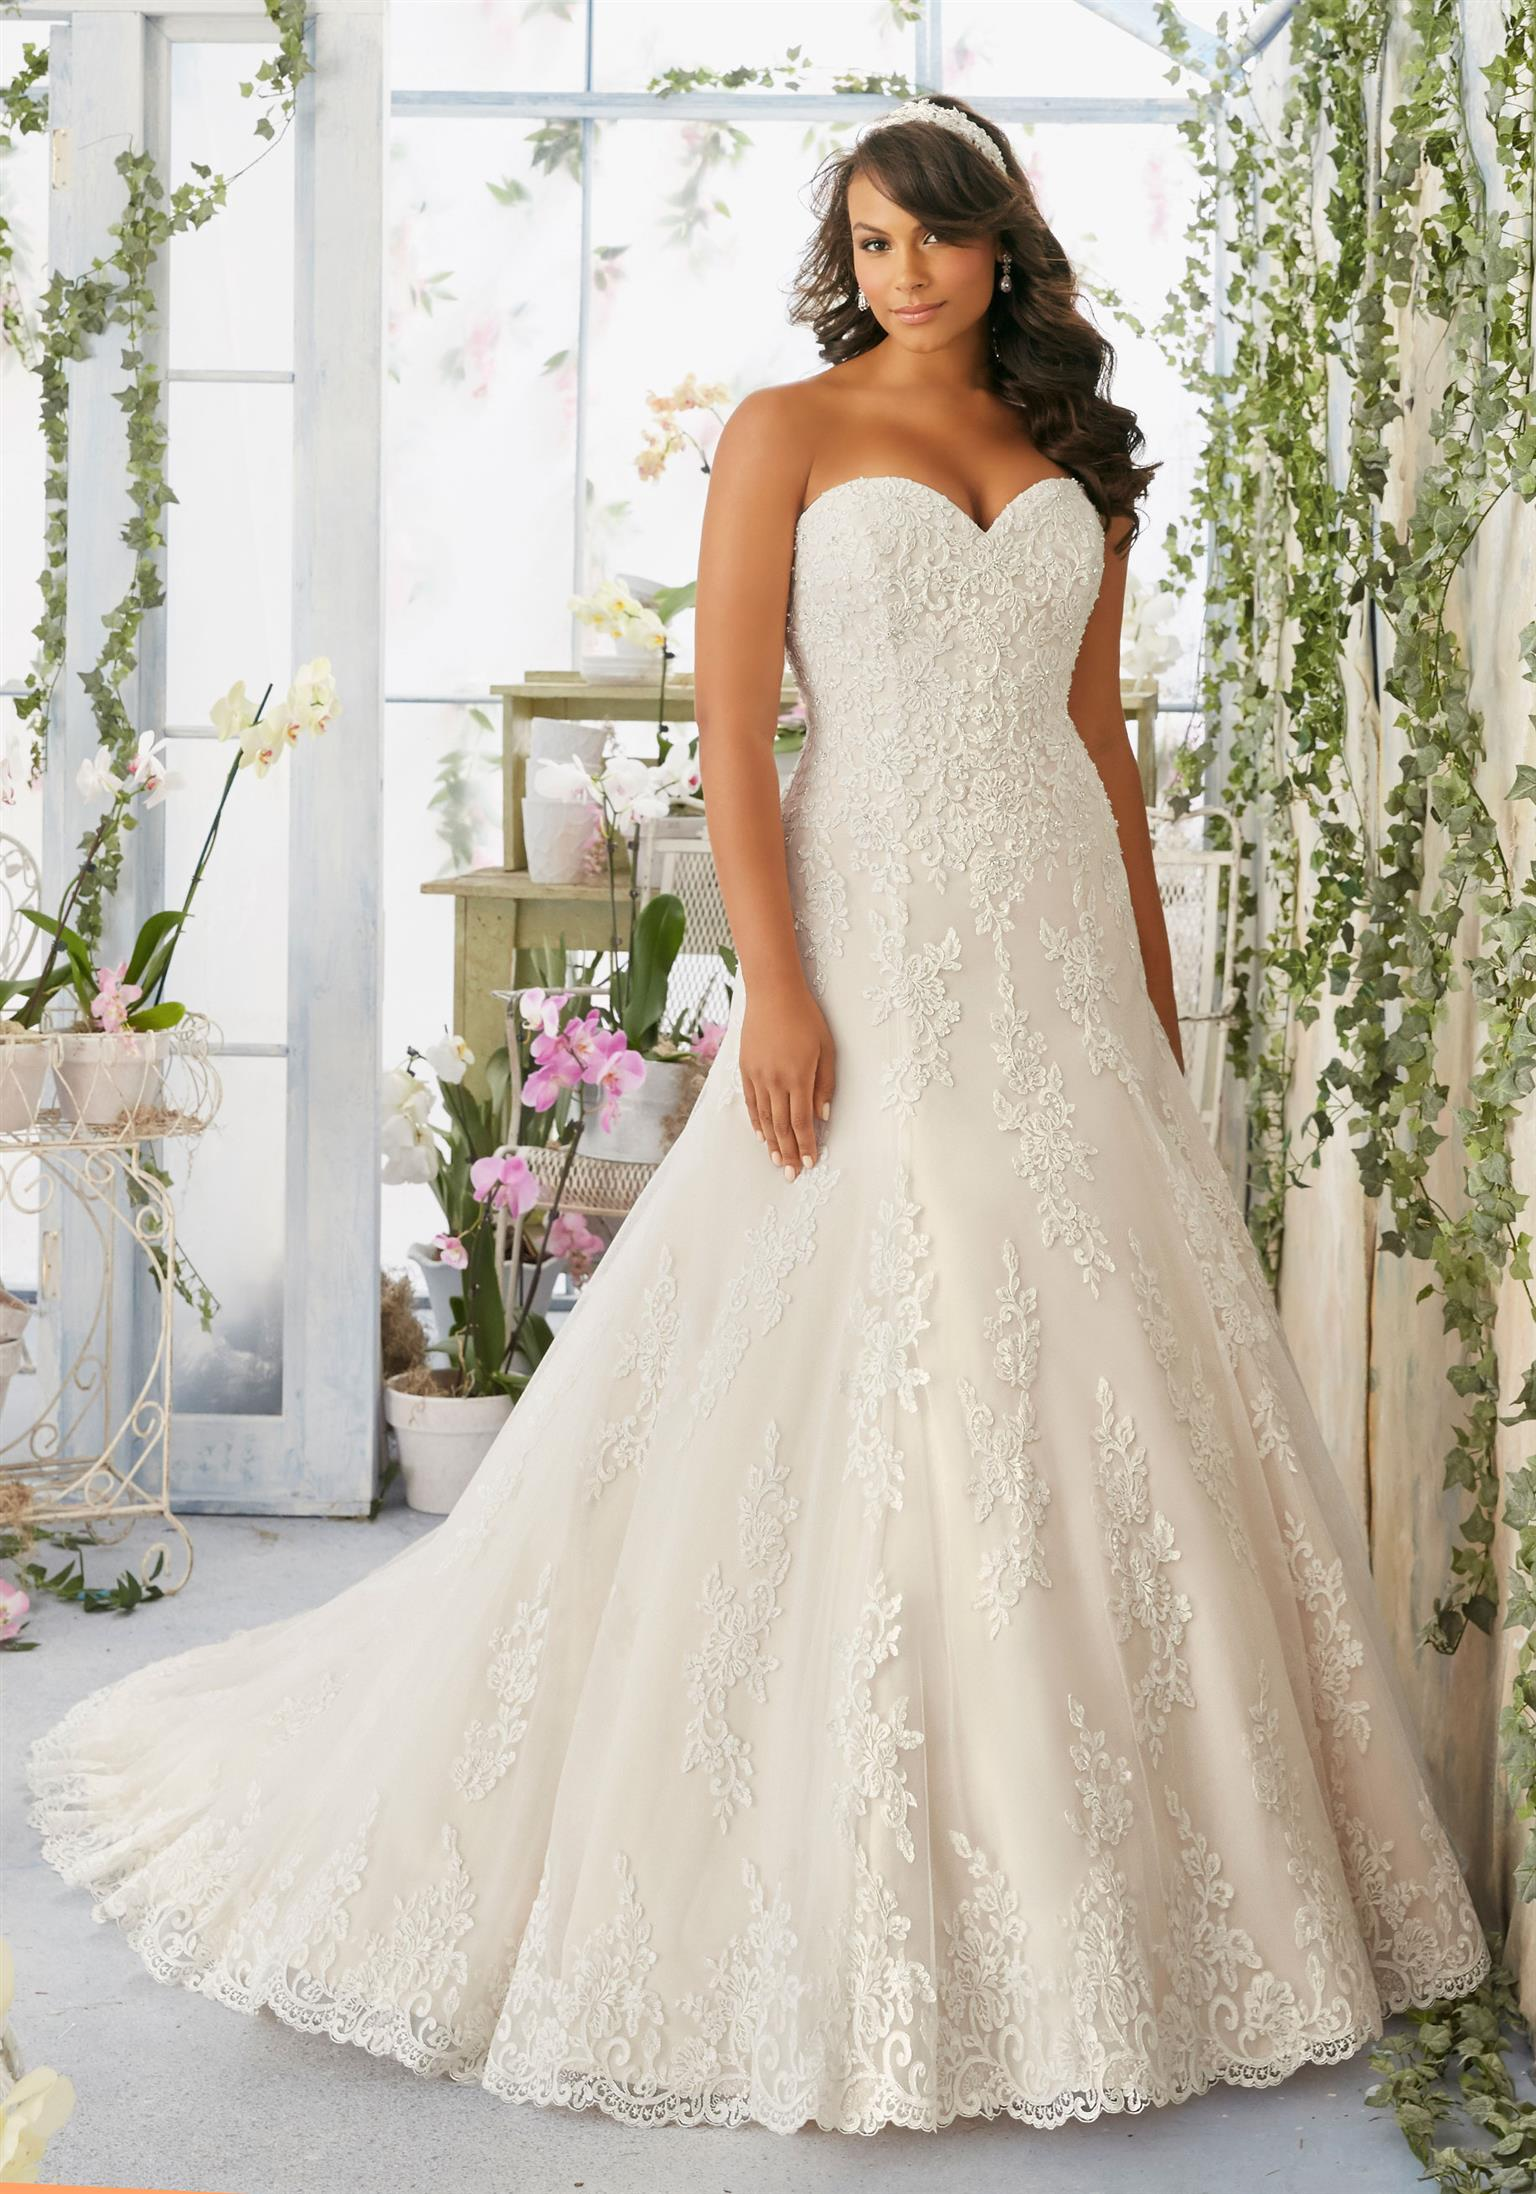 Plus size bridal wear sales and rentals |